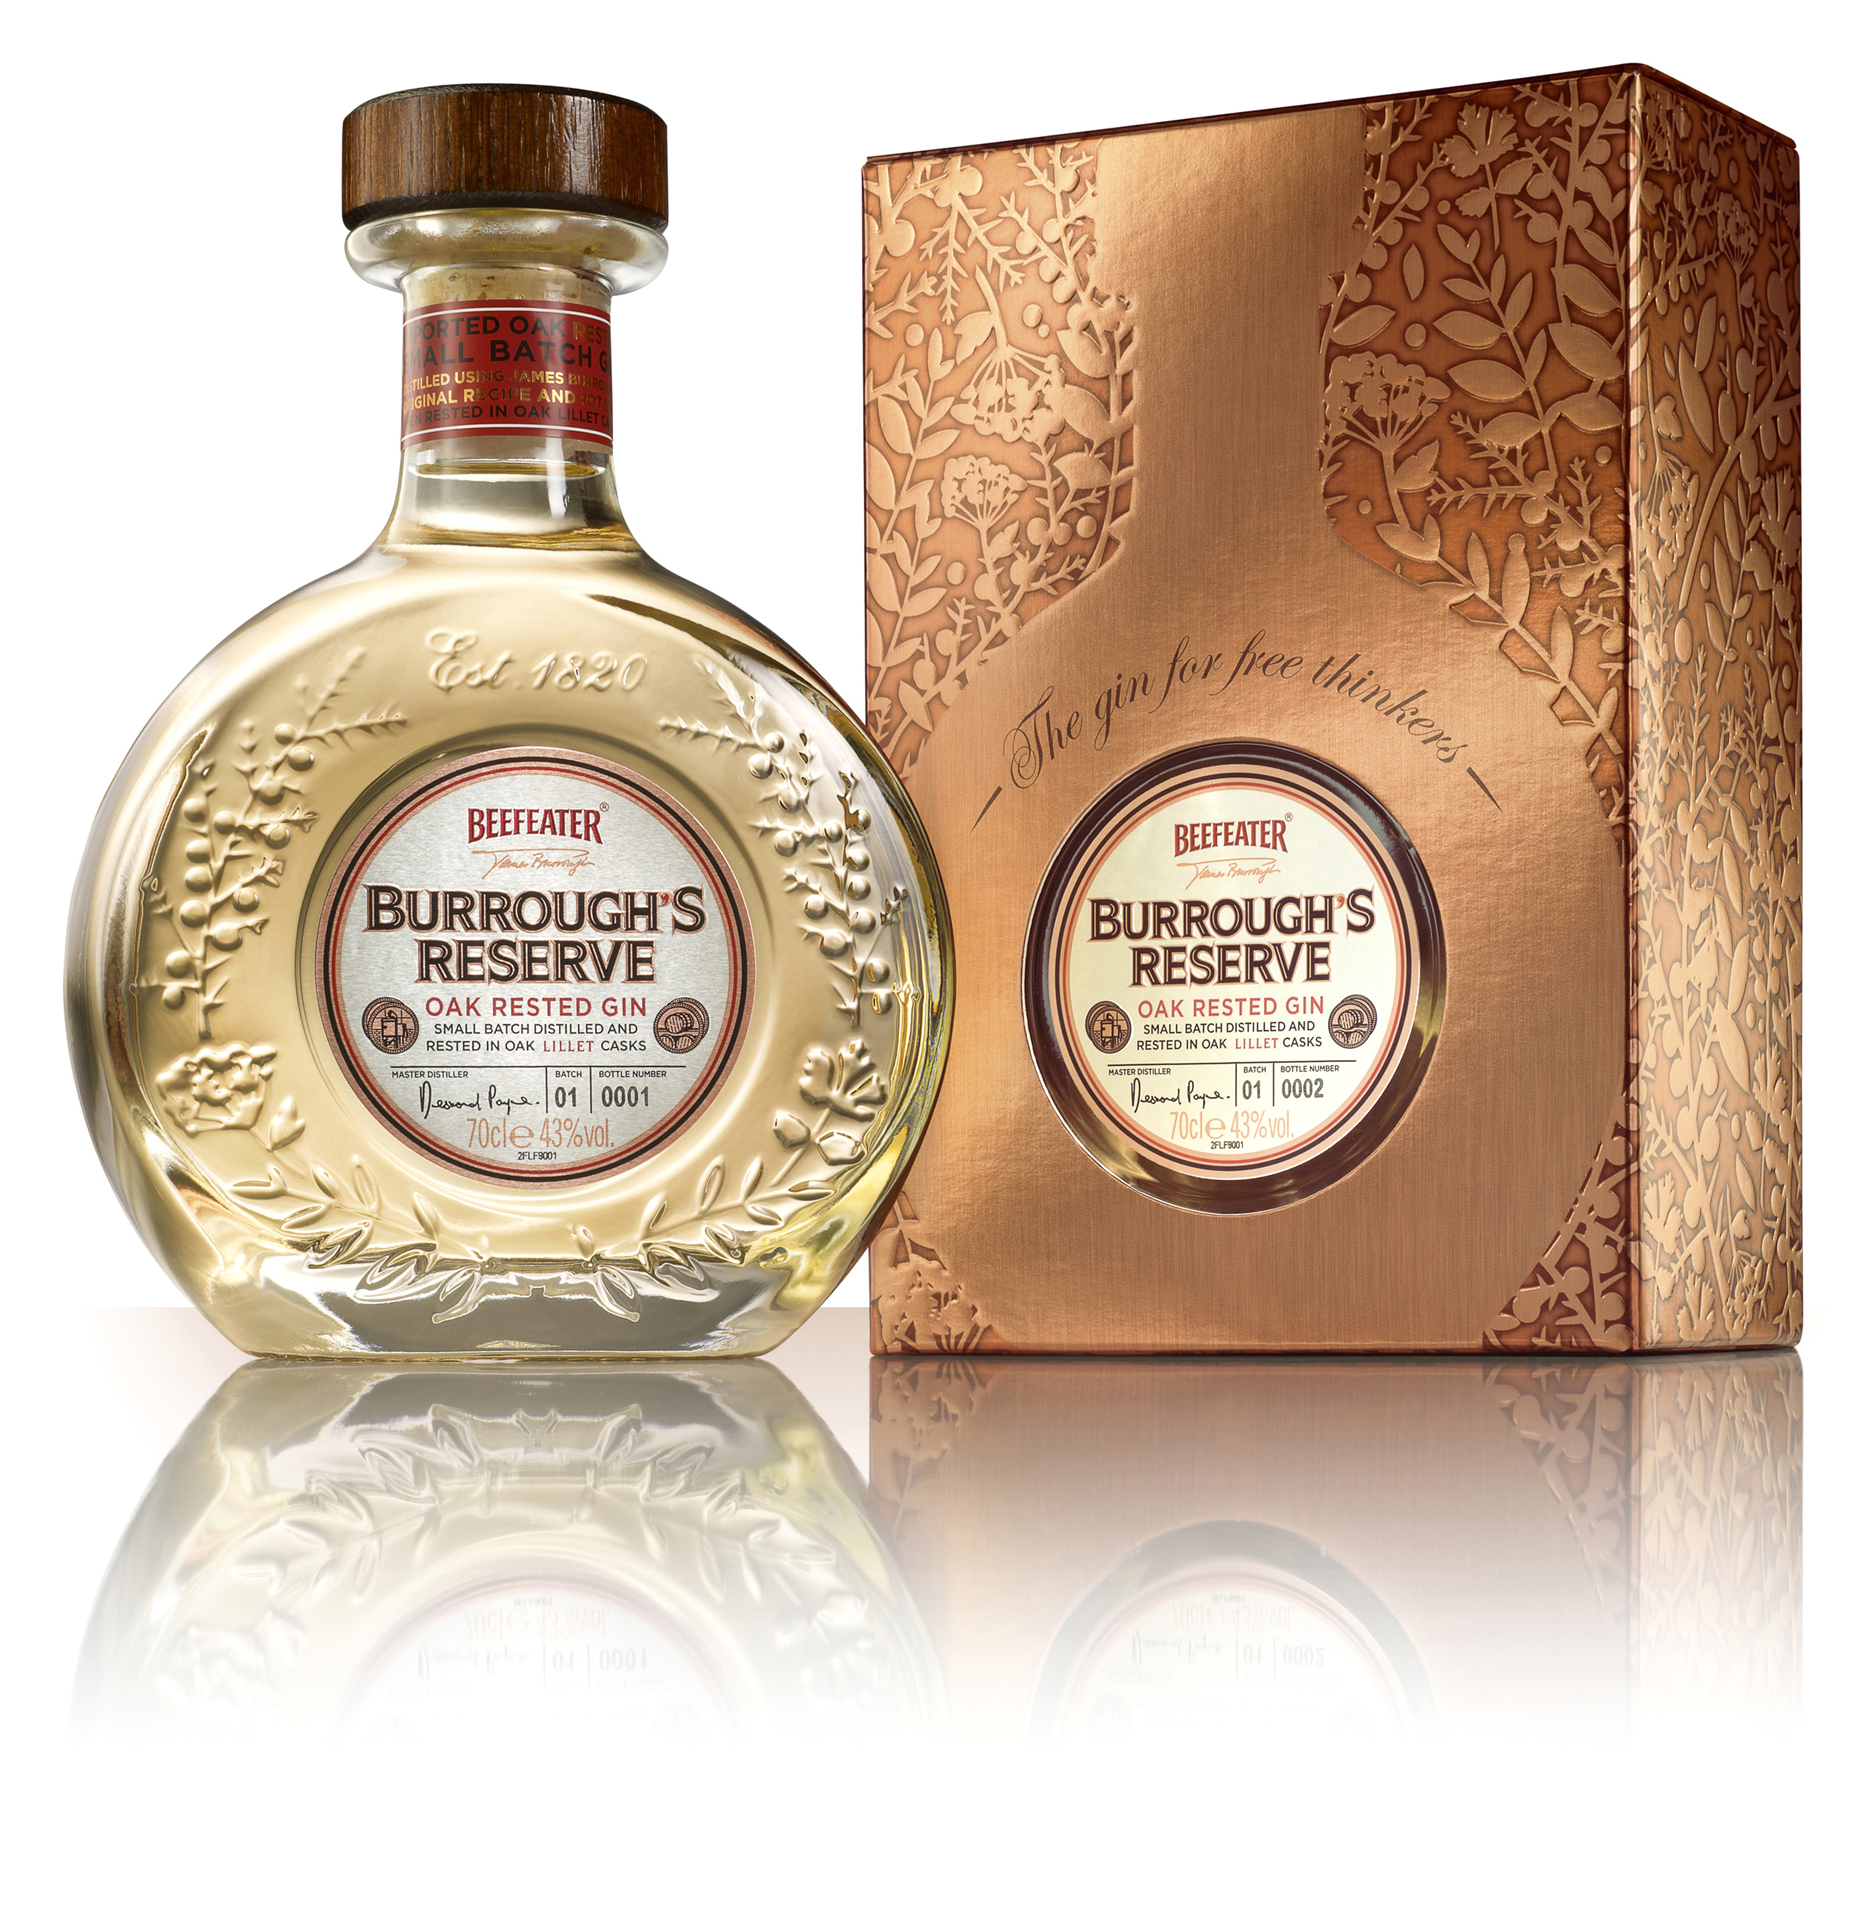 Photo: Beefeater Burrough's Reserve, a bottle and an outer packaging